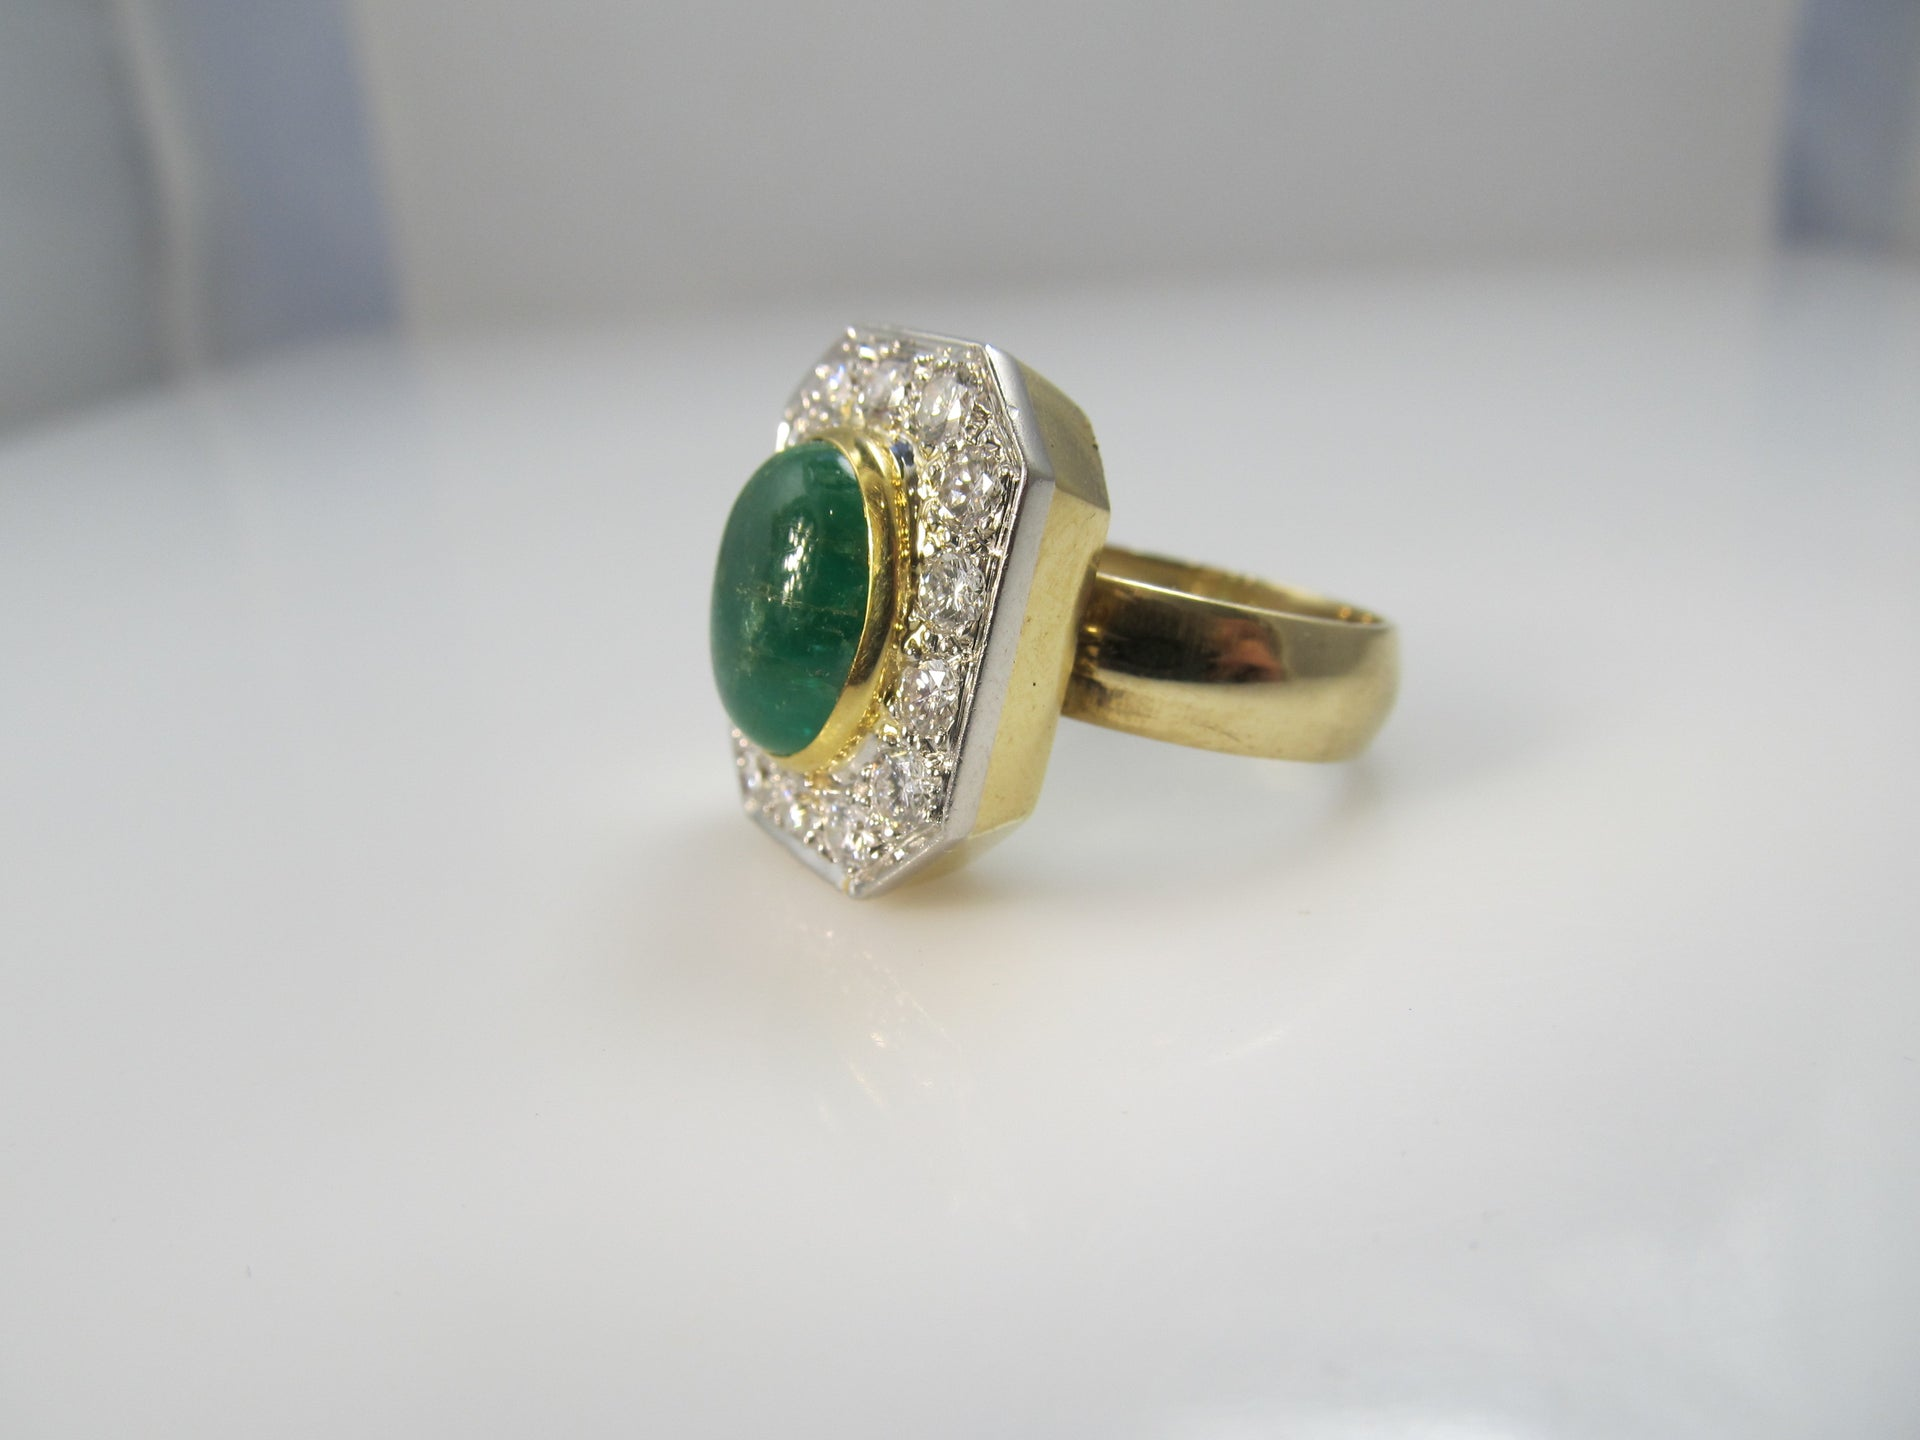 18k 2.50ct Cabochon Cut Emerald, 1.40ct Diamond Ring